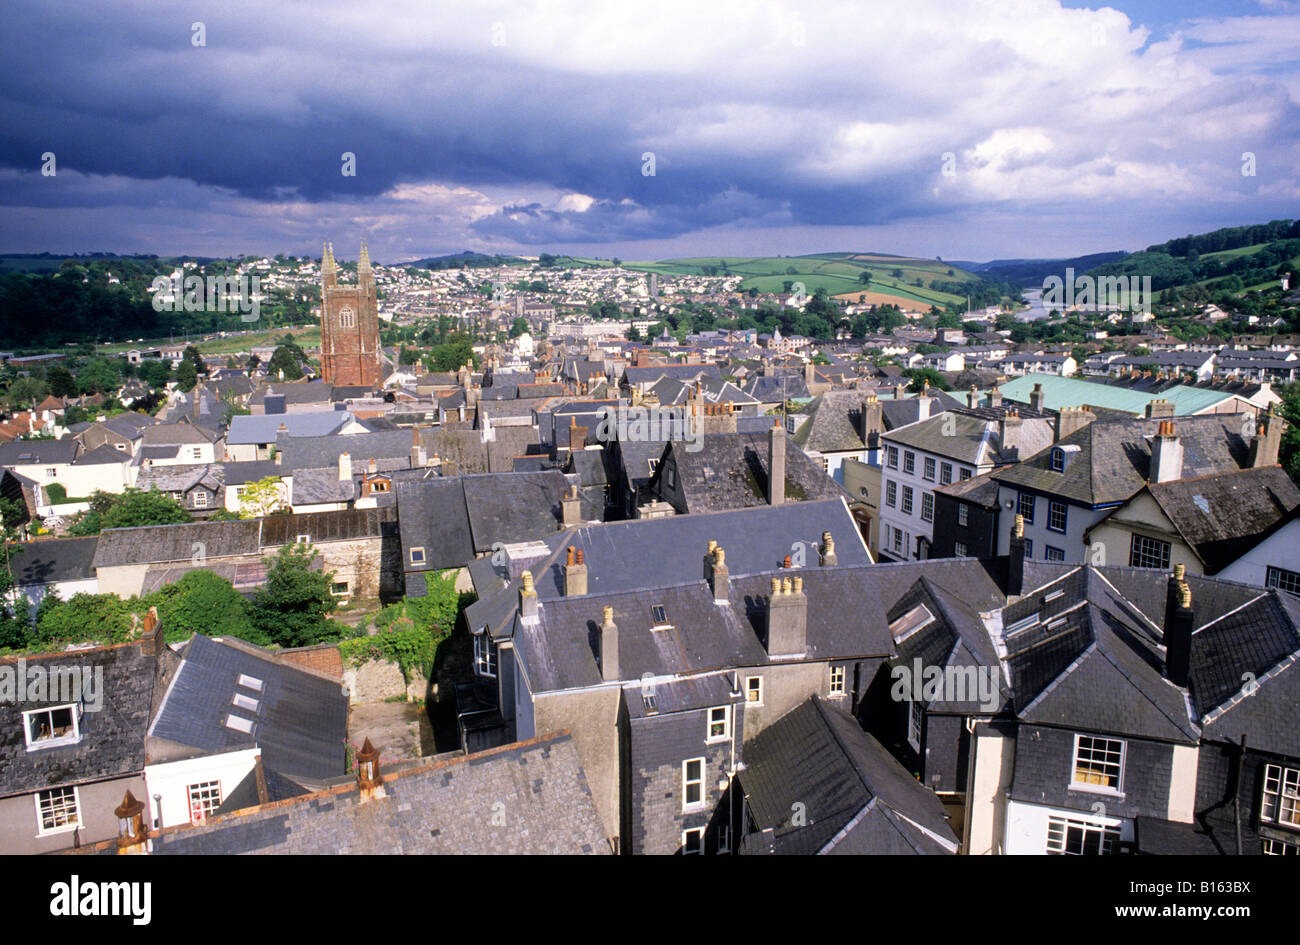 Totnes Devon town church houses streets English townscape view England UK travel - Stock Image